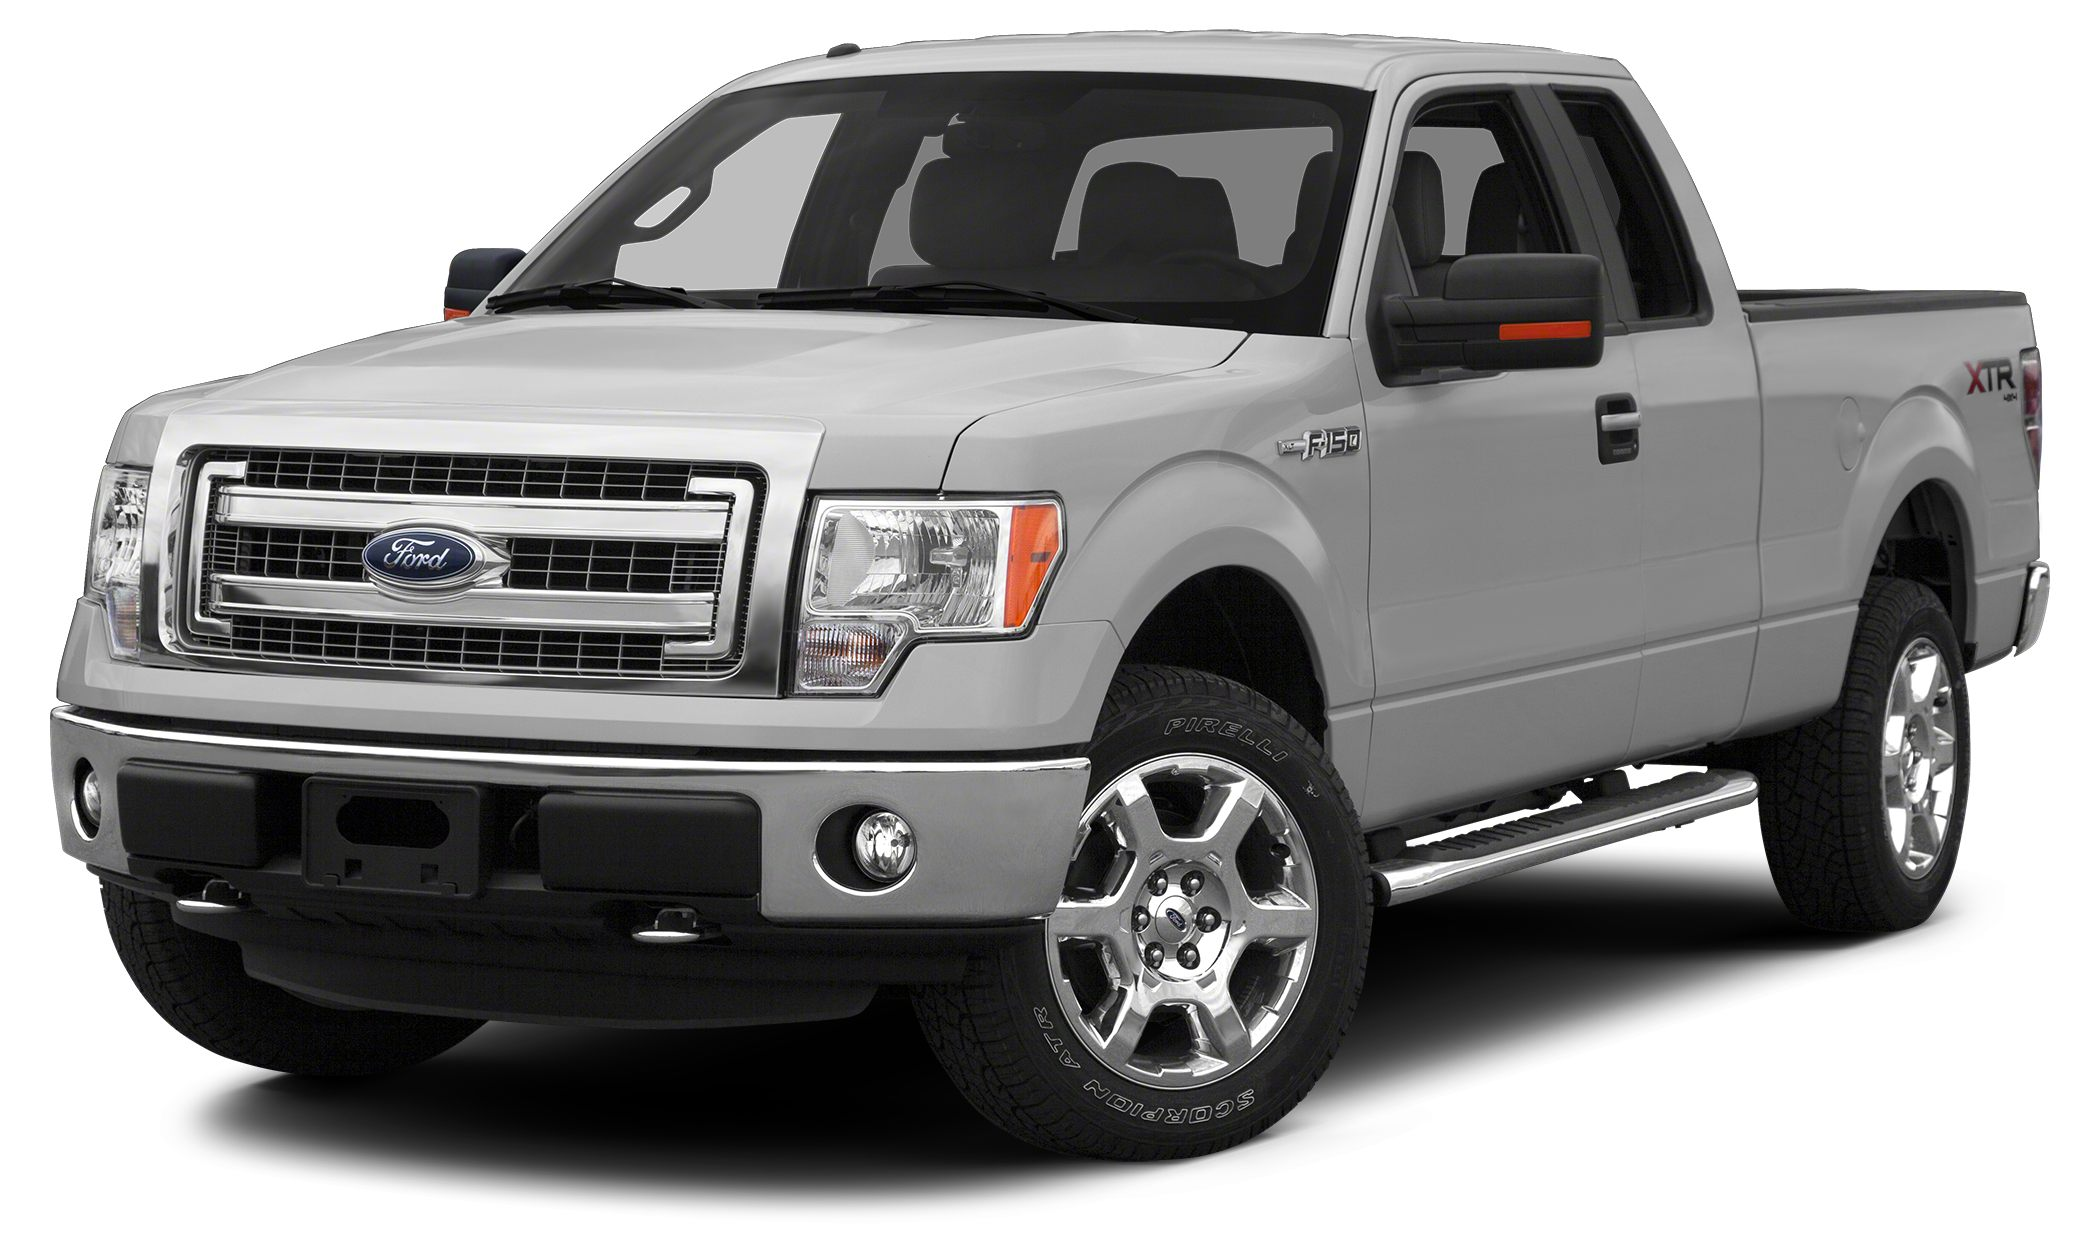 2013 Ford F-150 XLT 600 below Kelley Blue Book XLT trim CARFAX 1-Owner ONLY 35190 Miles iPod